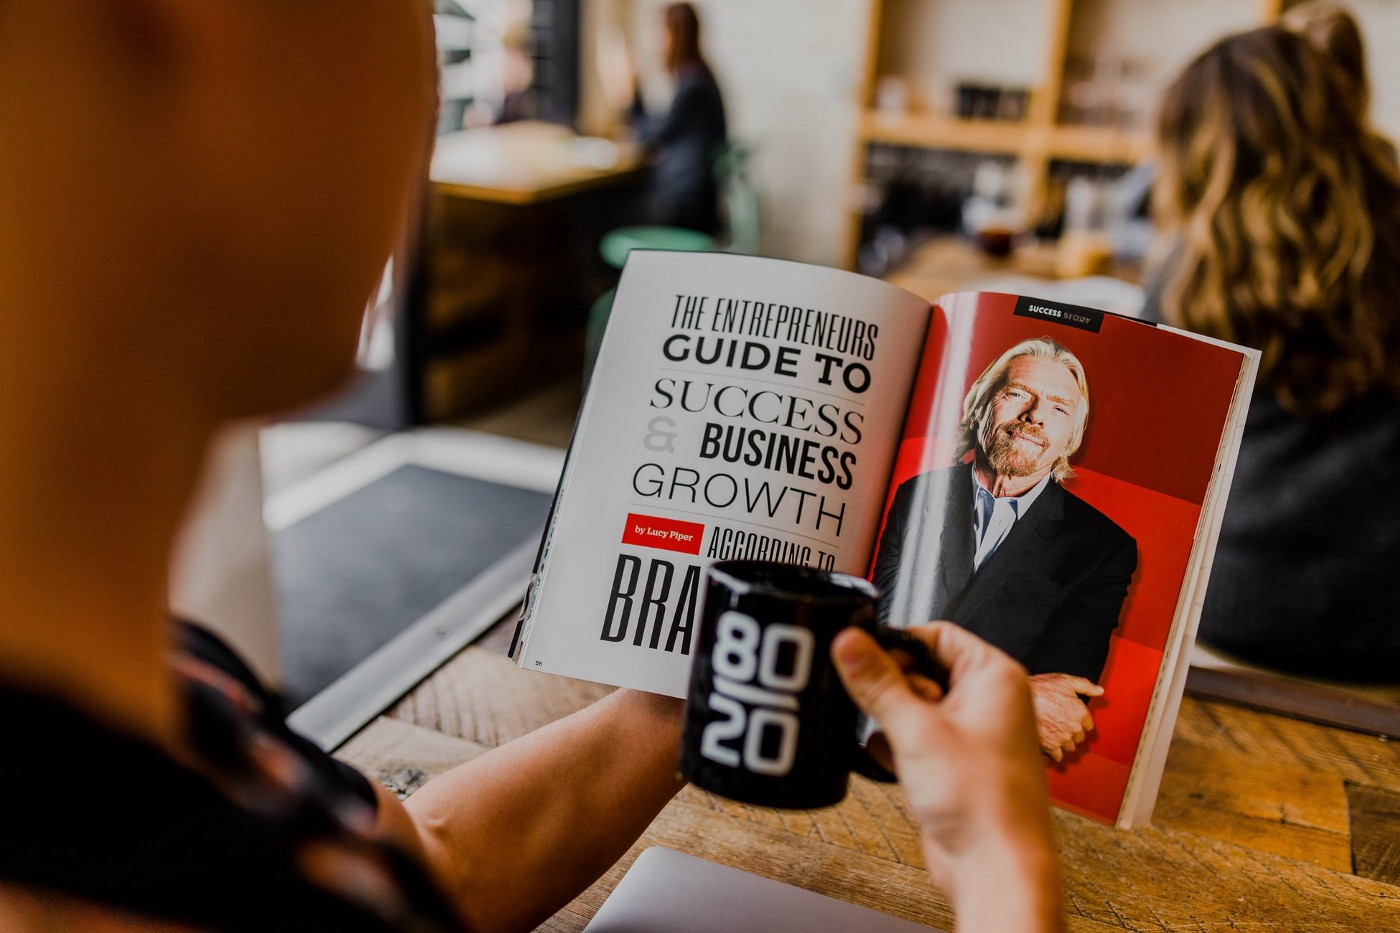 Man reading guide to success and business growth